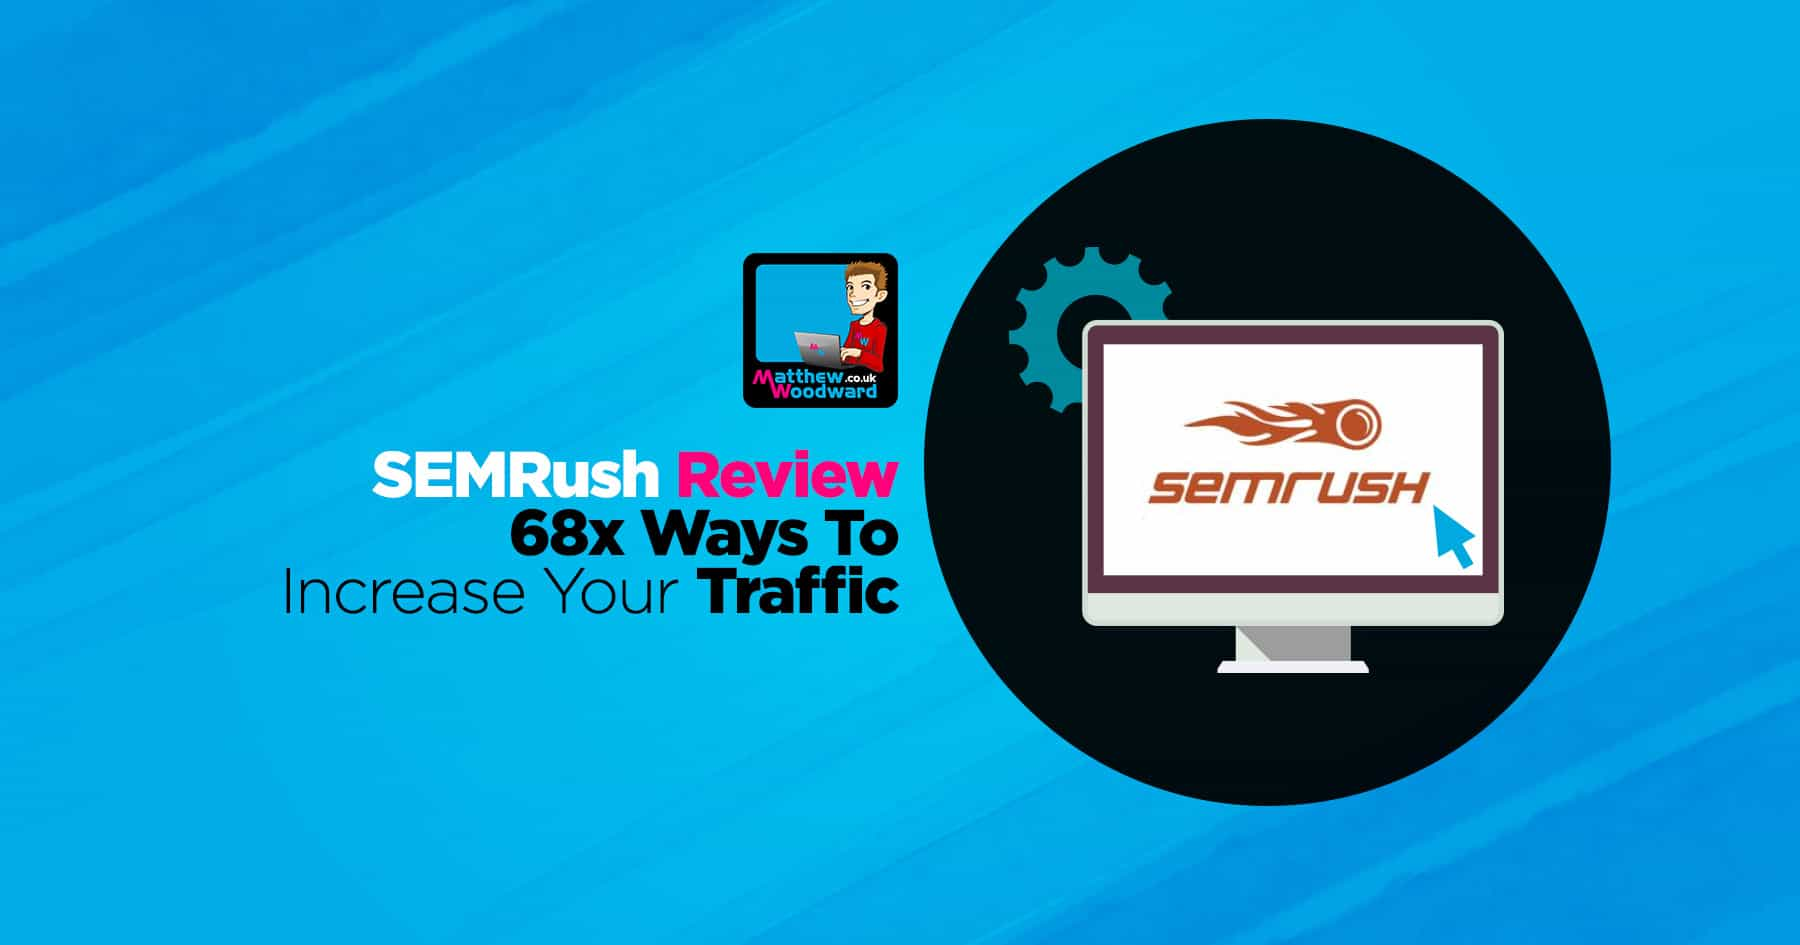 Seo Software Semrush Warranty Time